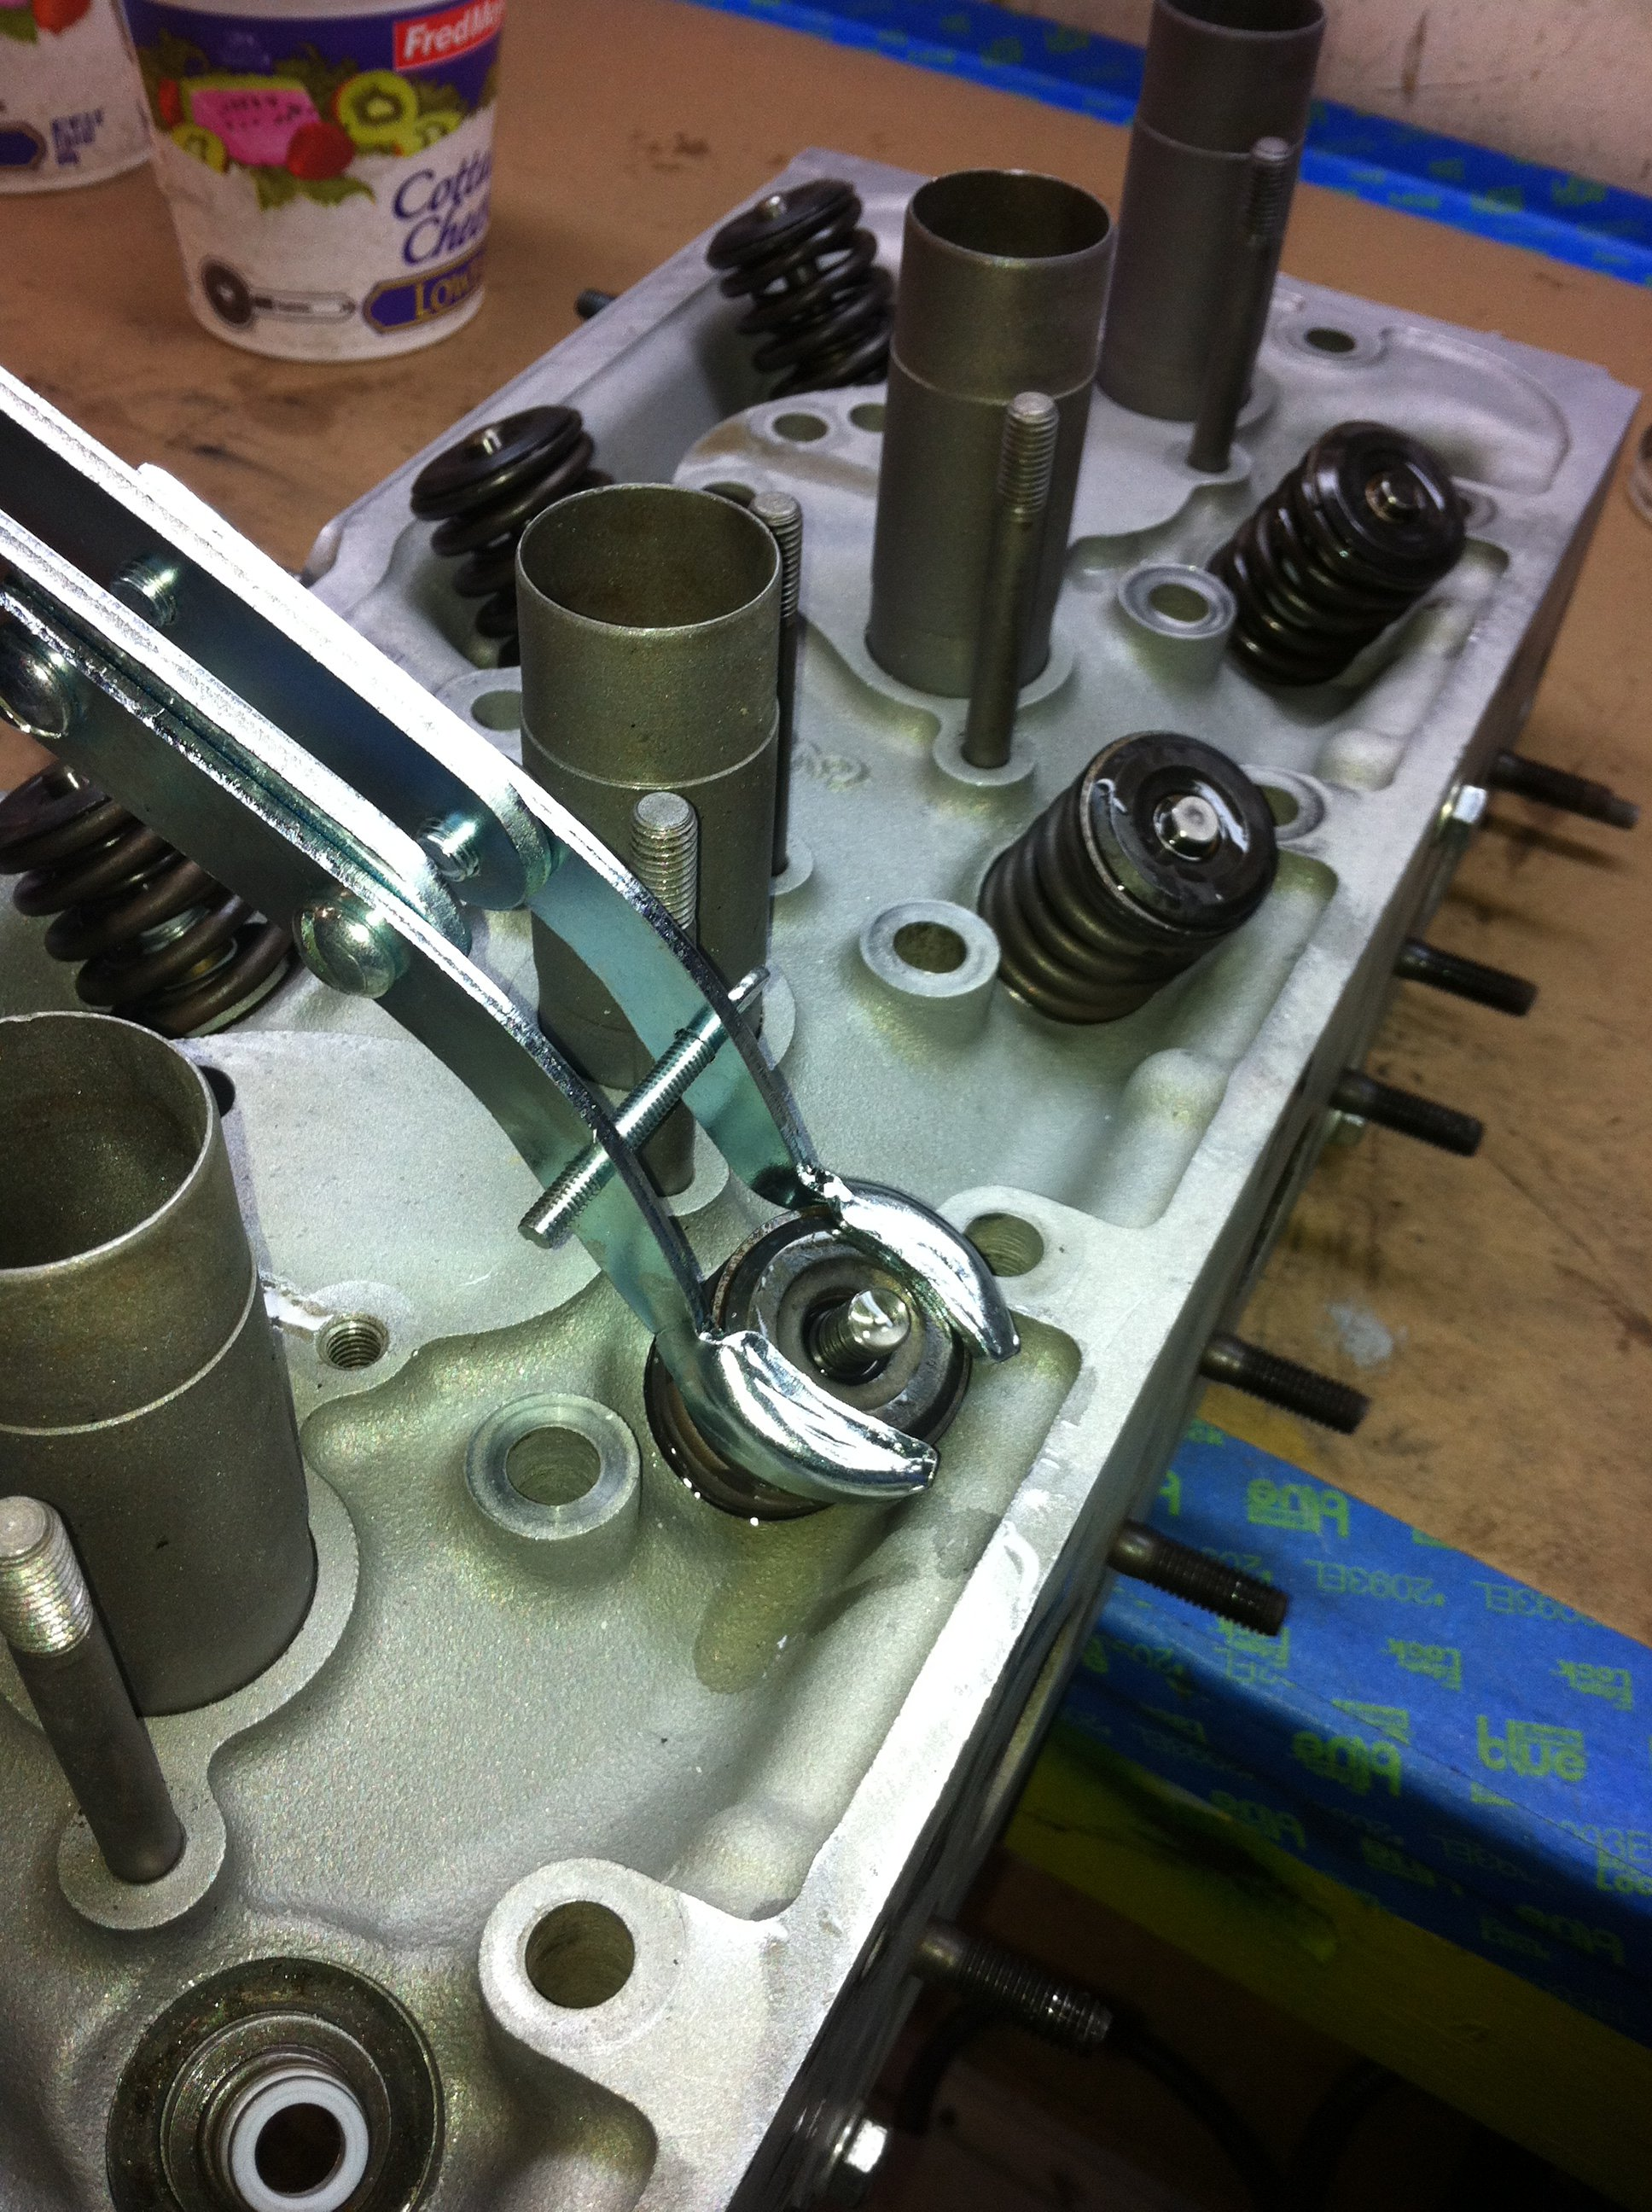 Back to work on the head - re-installing the valve springs after the seals are glued in place